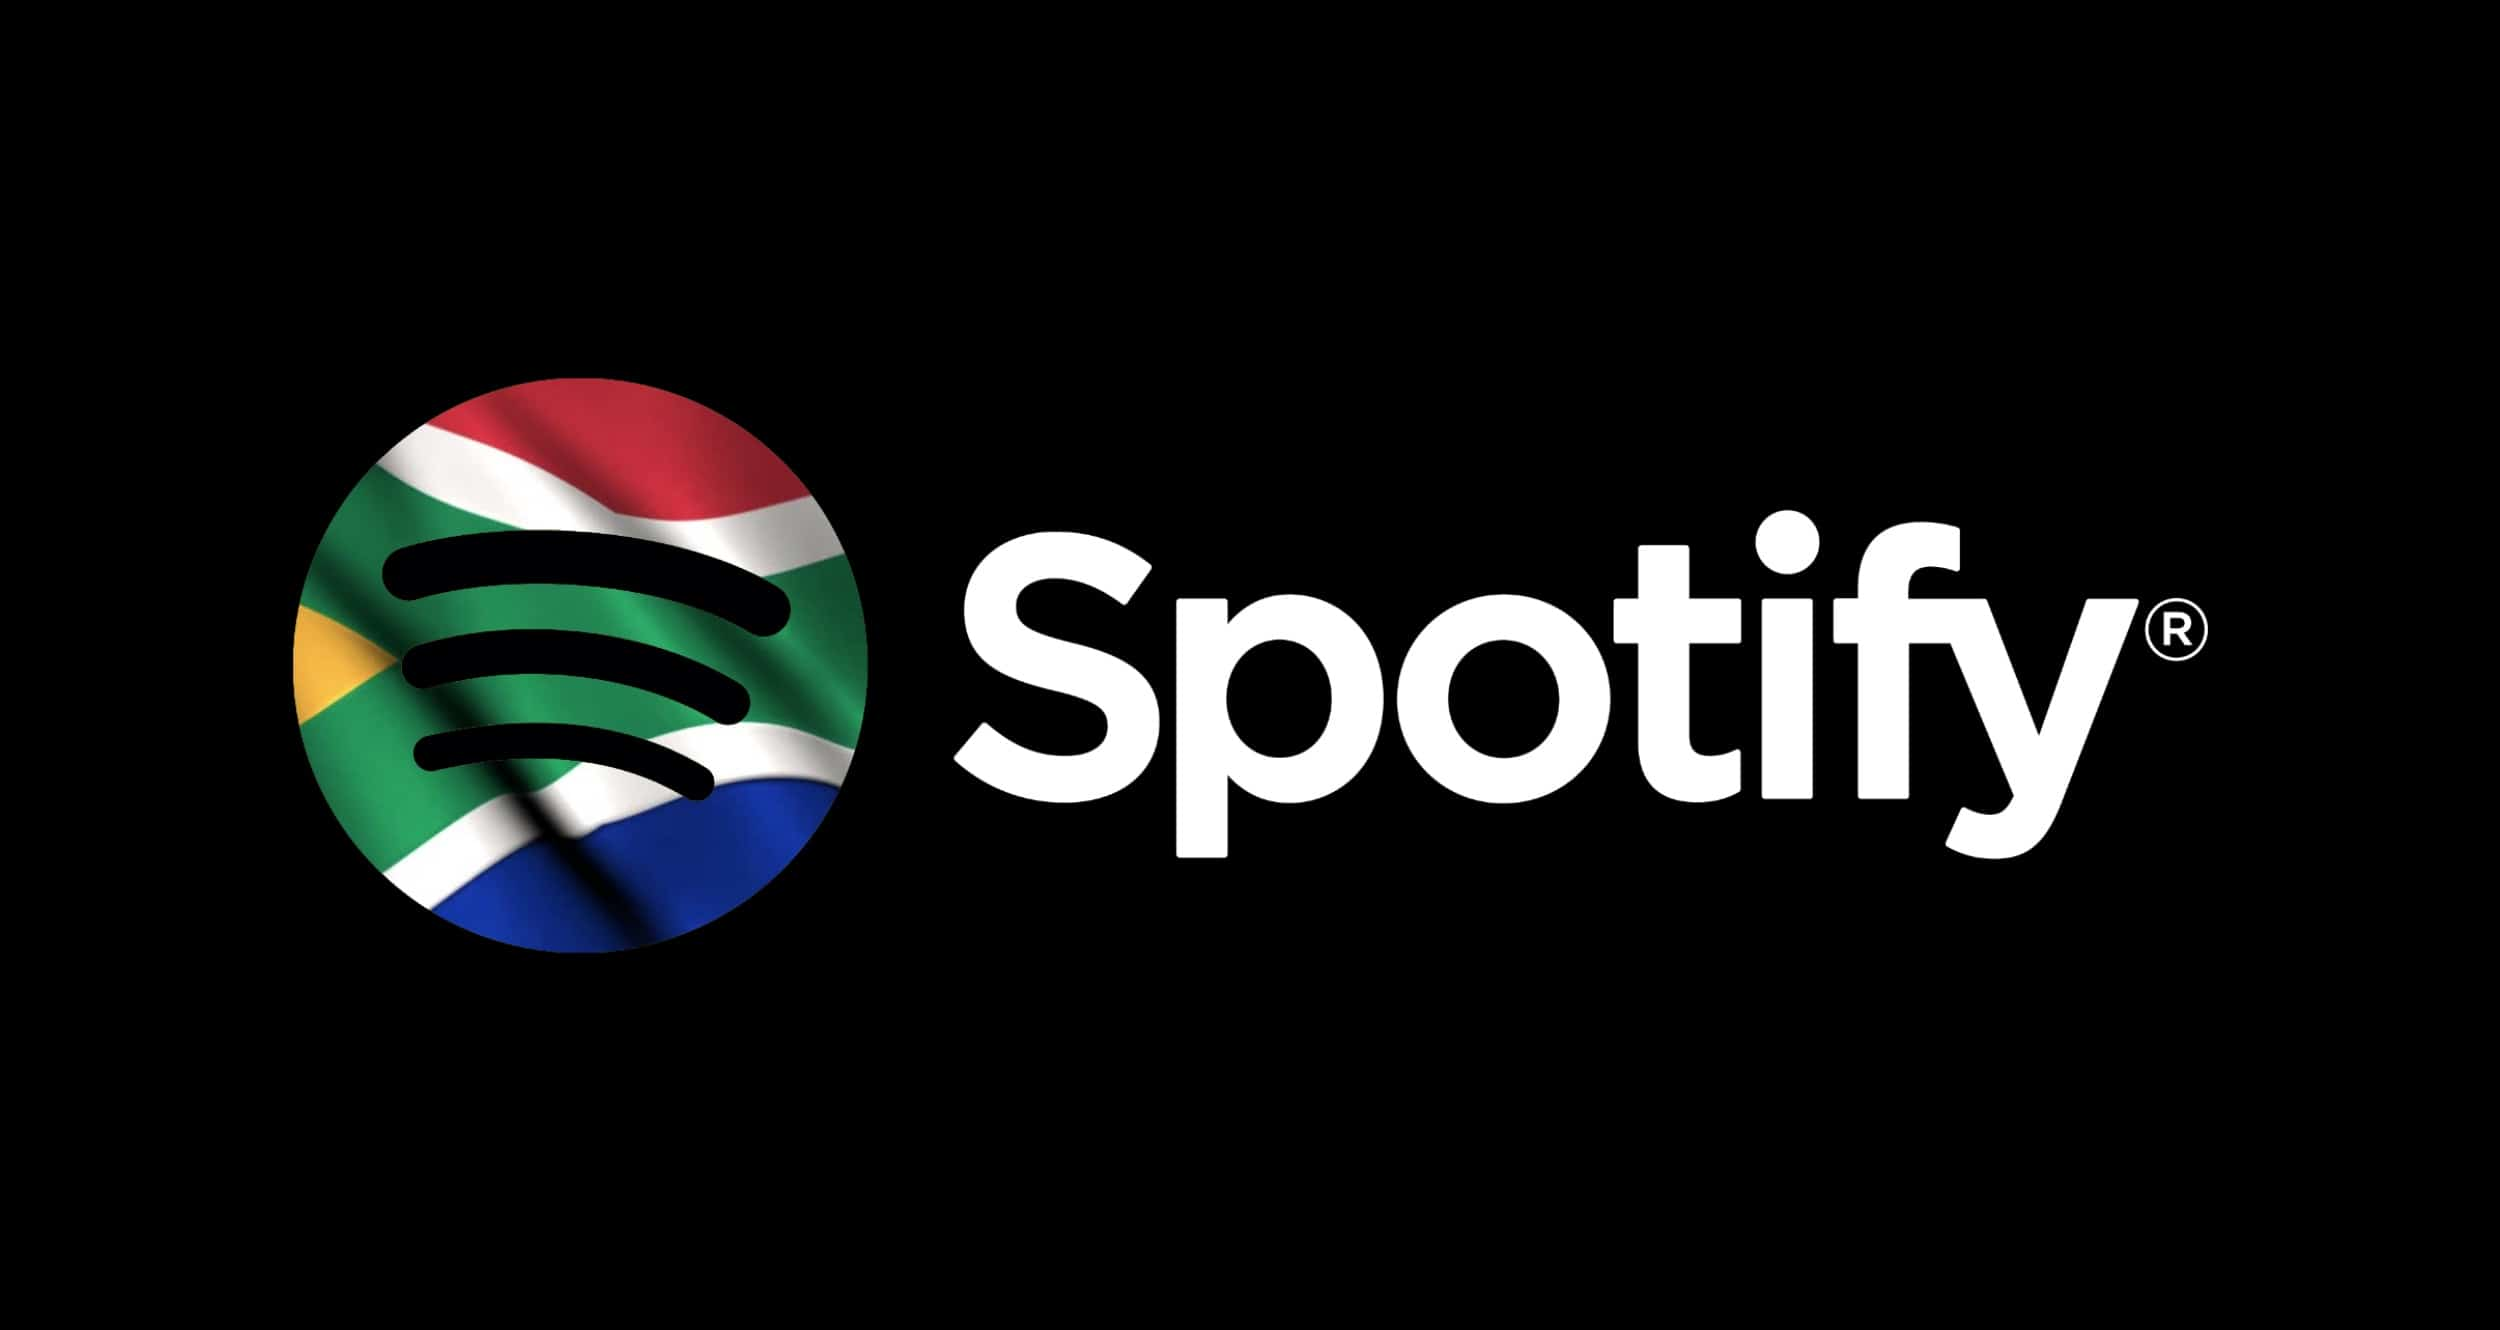 Entertainment Spotify South Africa launches only R60 per month for Premium By Edward Swardt- 12 March 2018 0